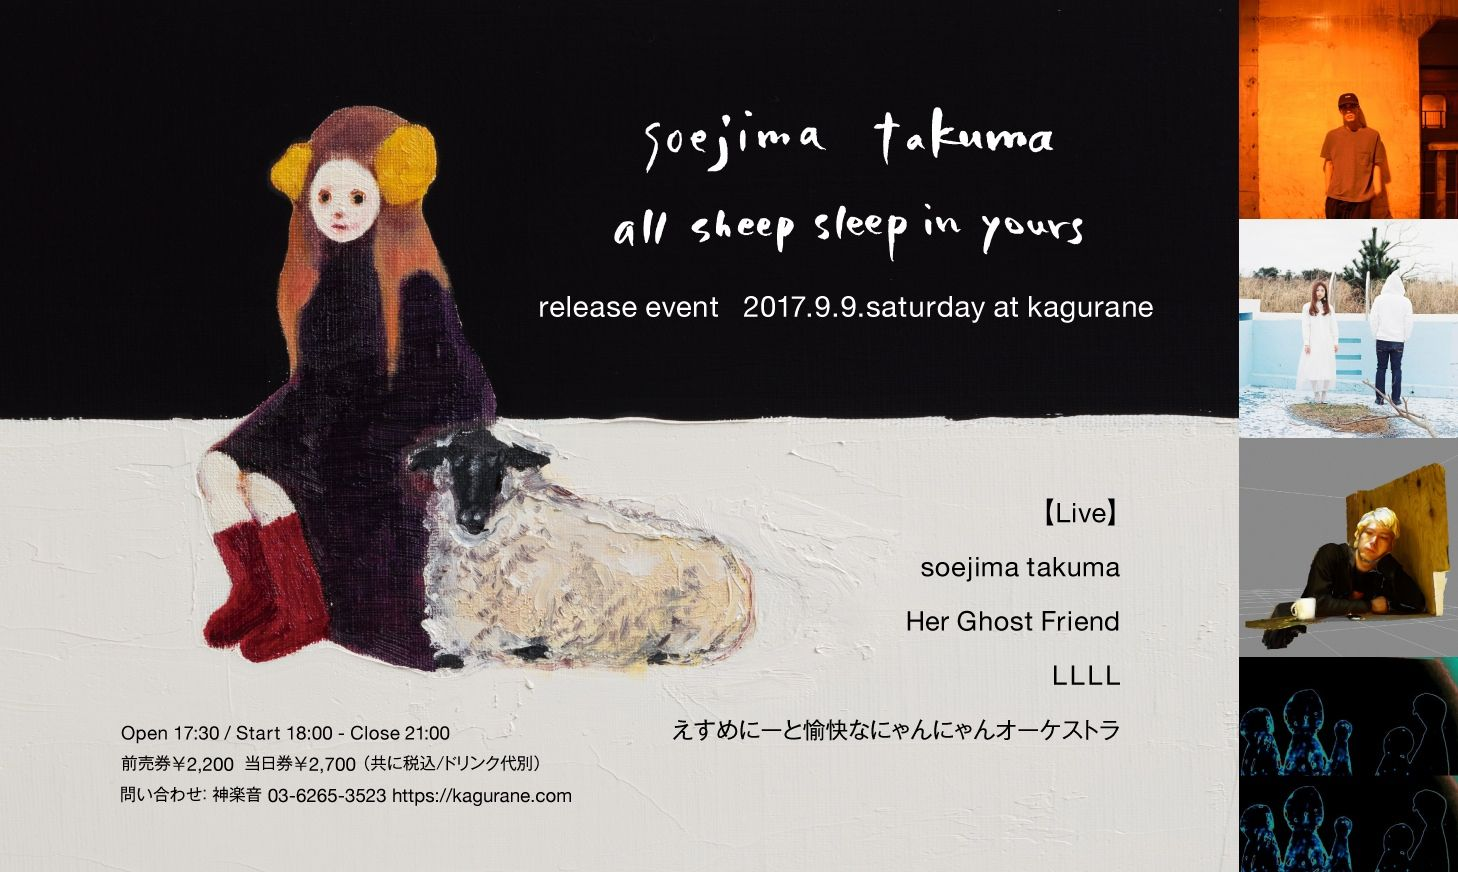 """all sheep sleep in yours"" release event"